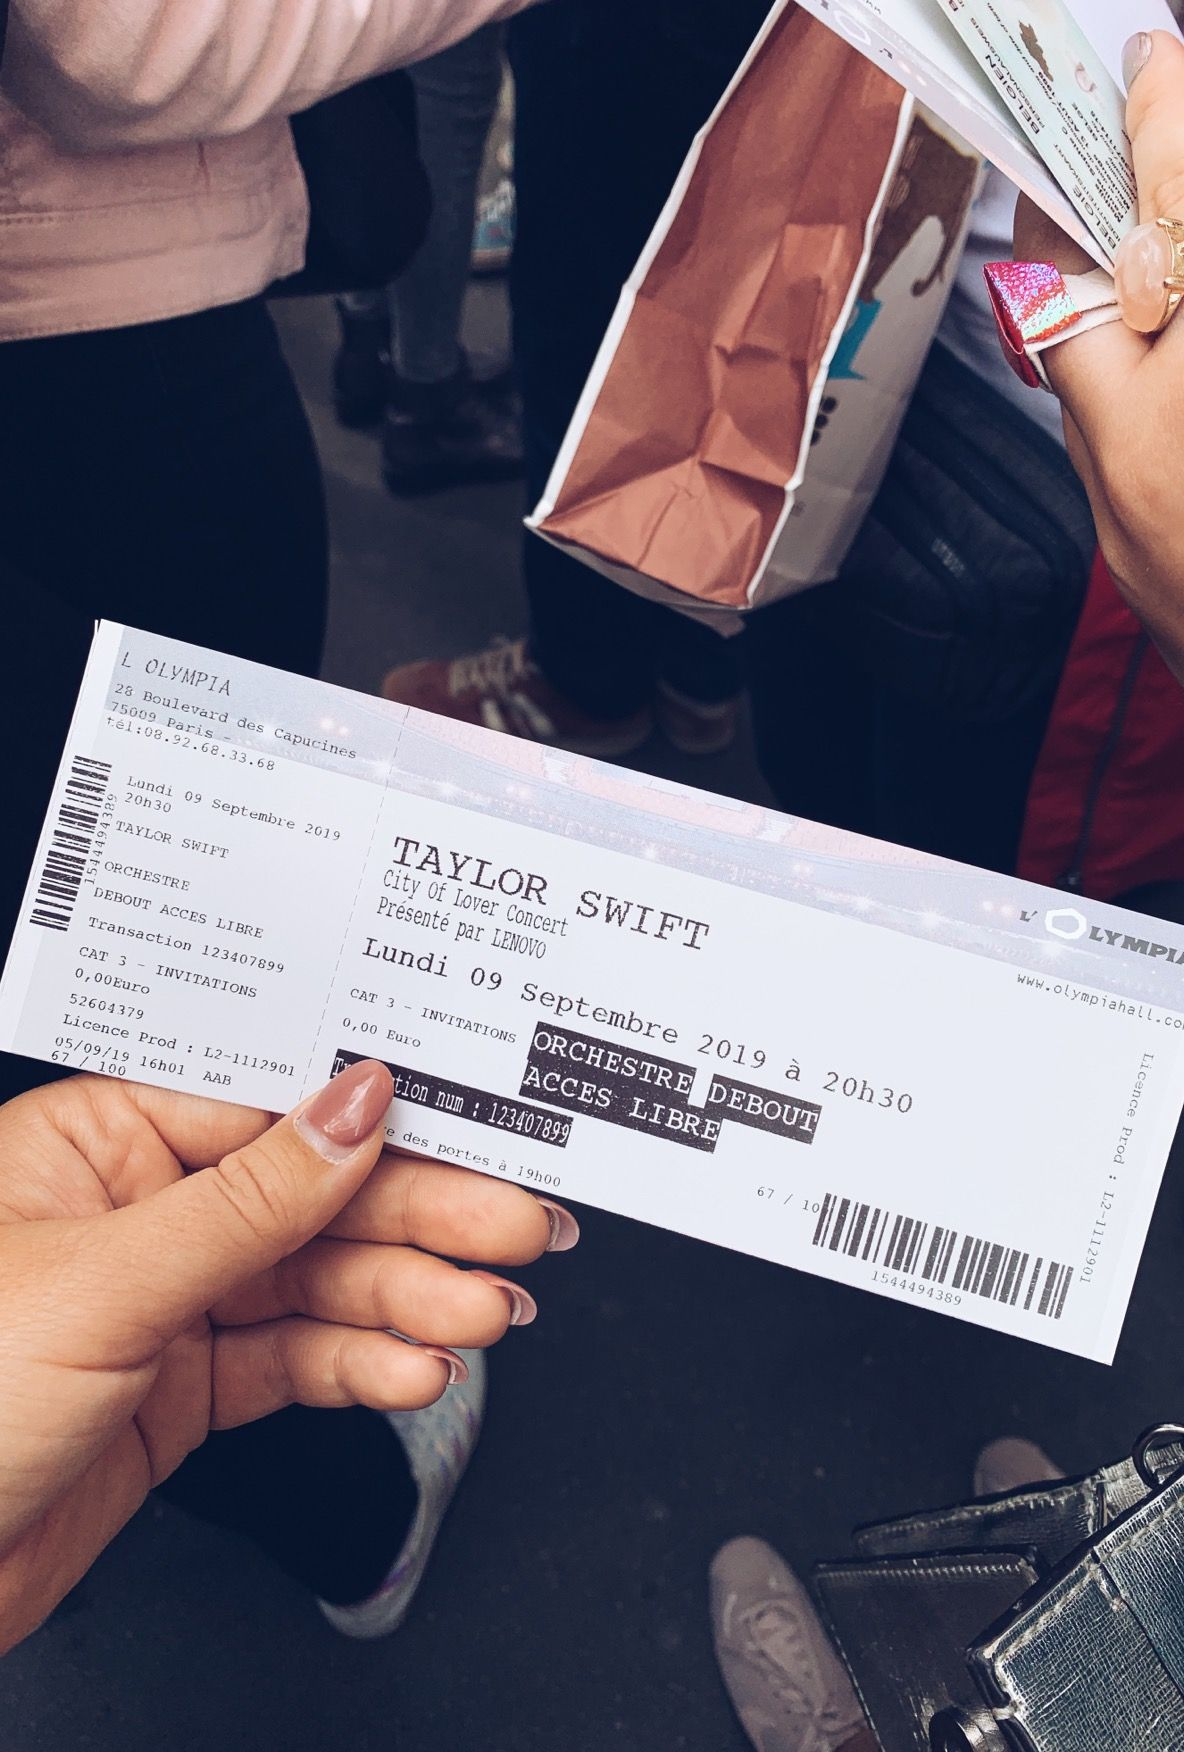 Happiness Is Having A Taylor Swift Concert Ticket In Your Hand Taylor Swift Concert Taylor Swift Tickets Concert Ticket Gift